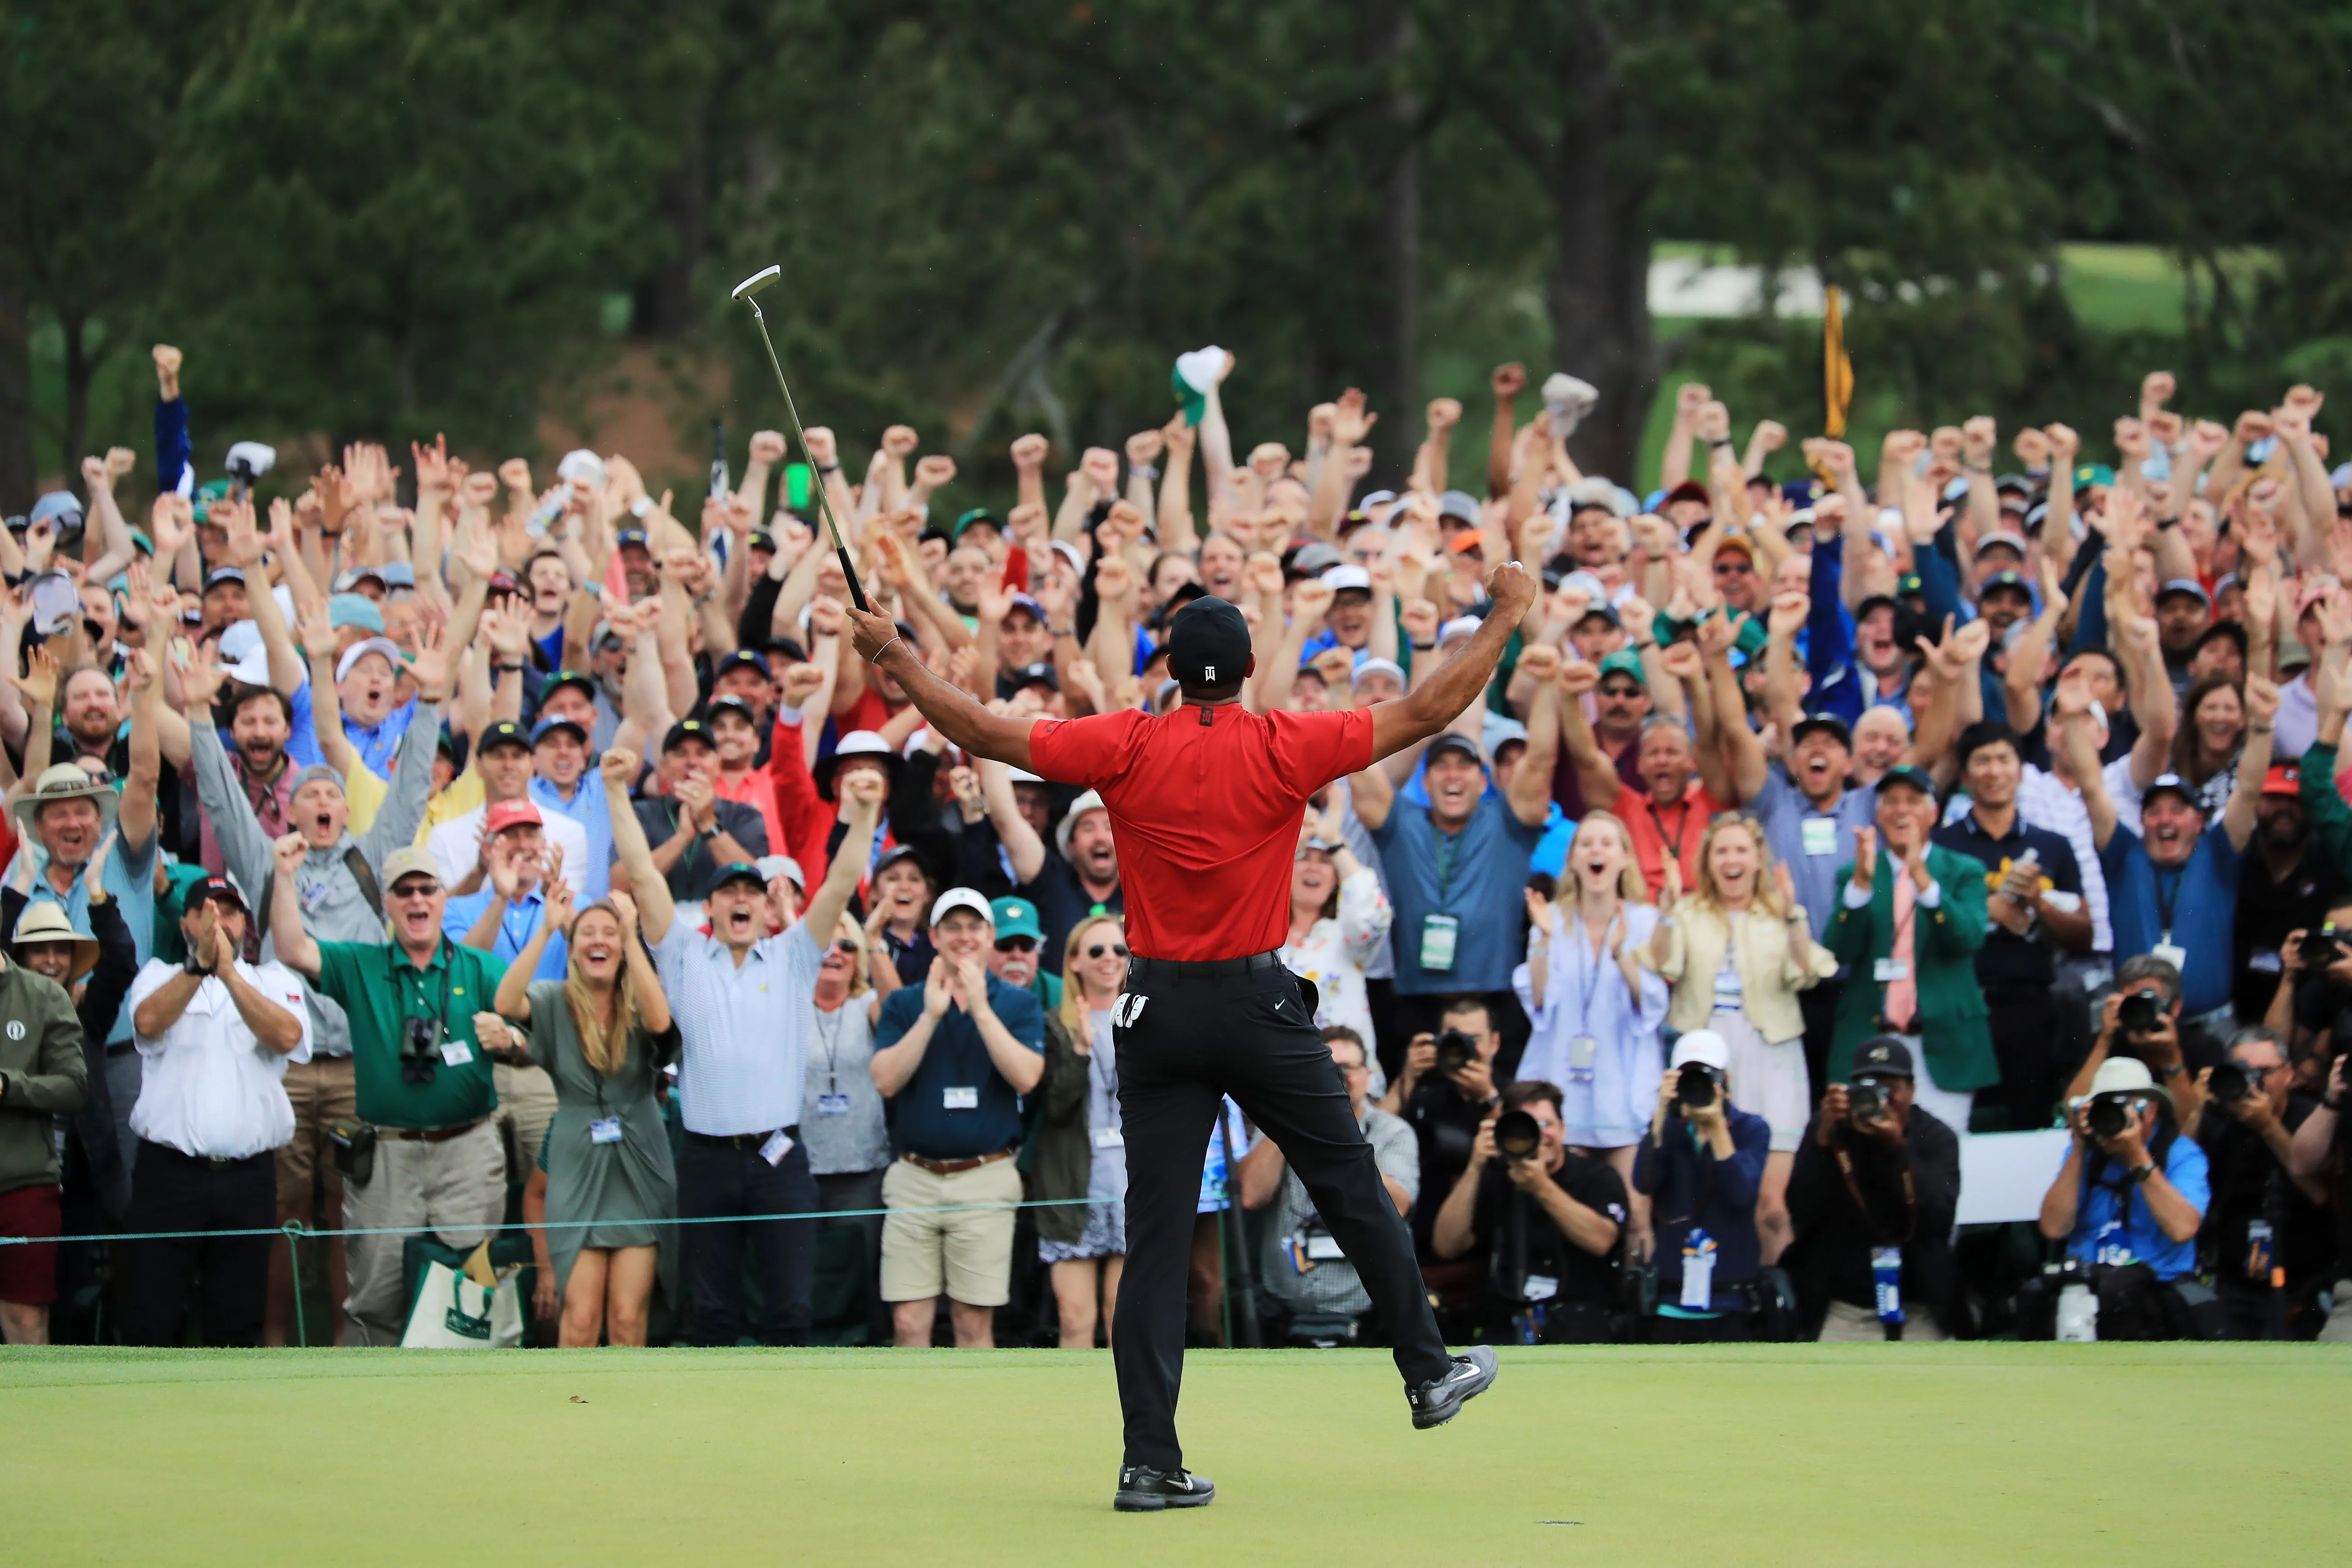 tiger woods score today at the memorial tournament